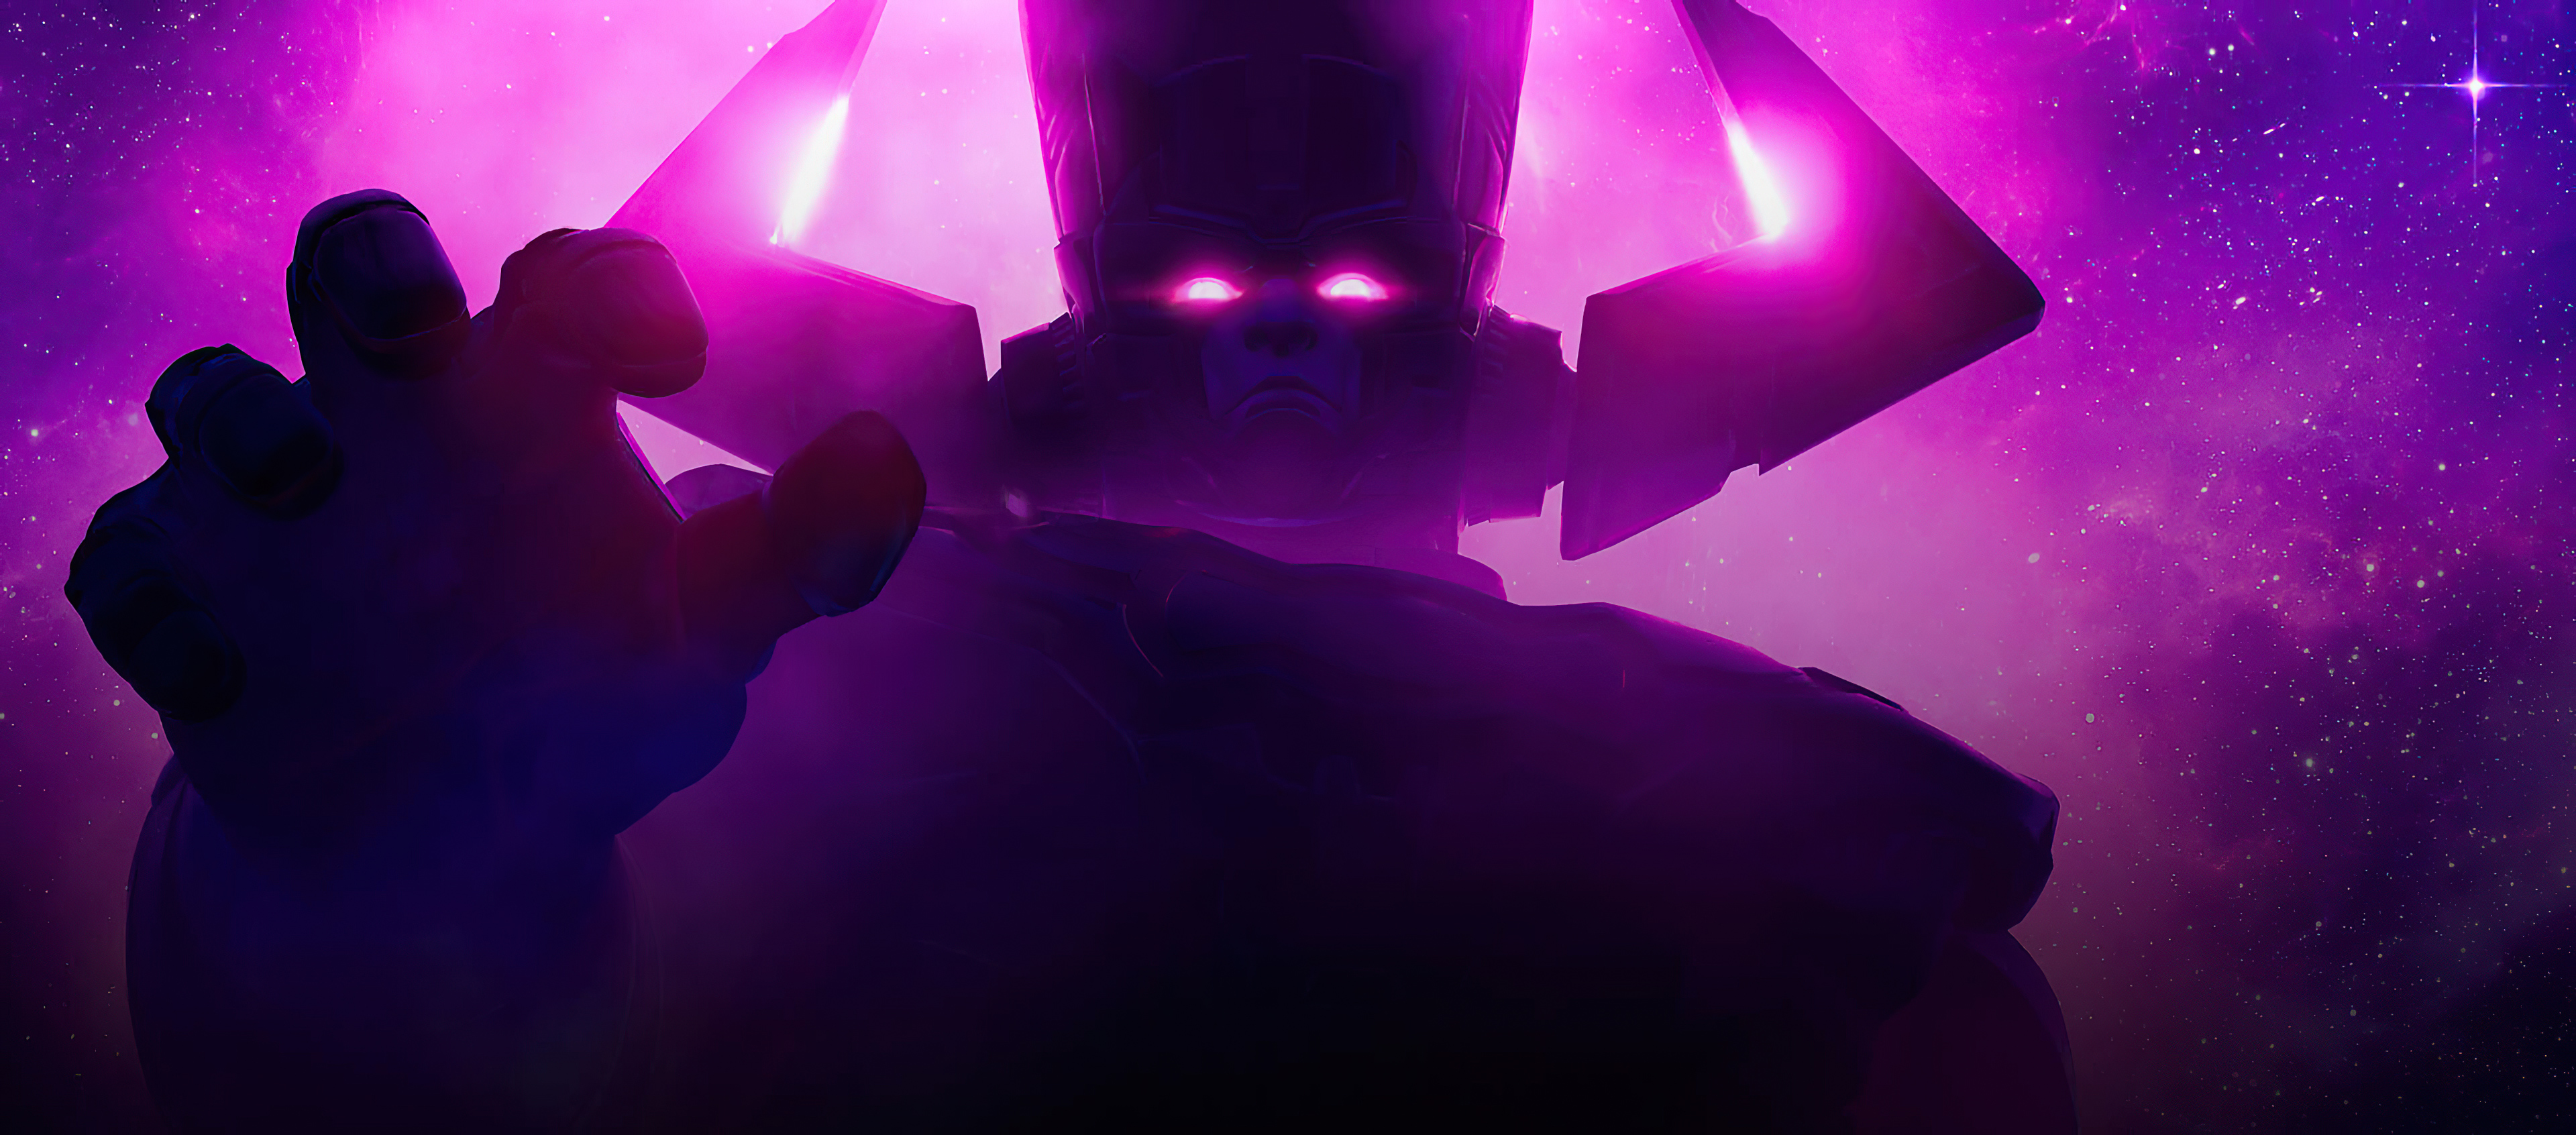 Fortnite Hd Wallpaper Background Image 3840x1692 Id 1098786 Wallpaper Abyss